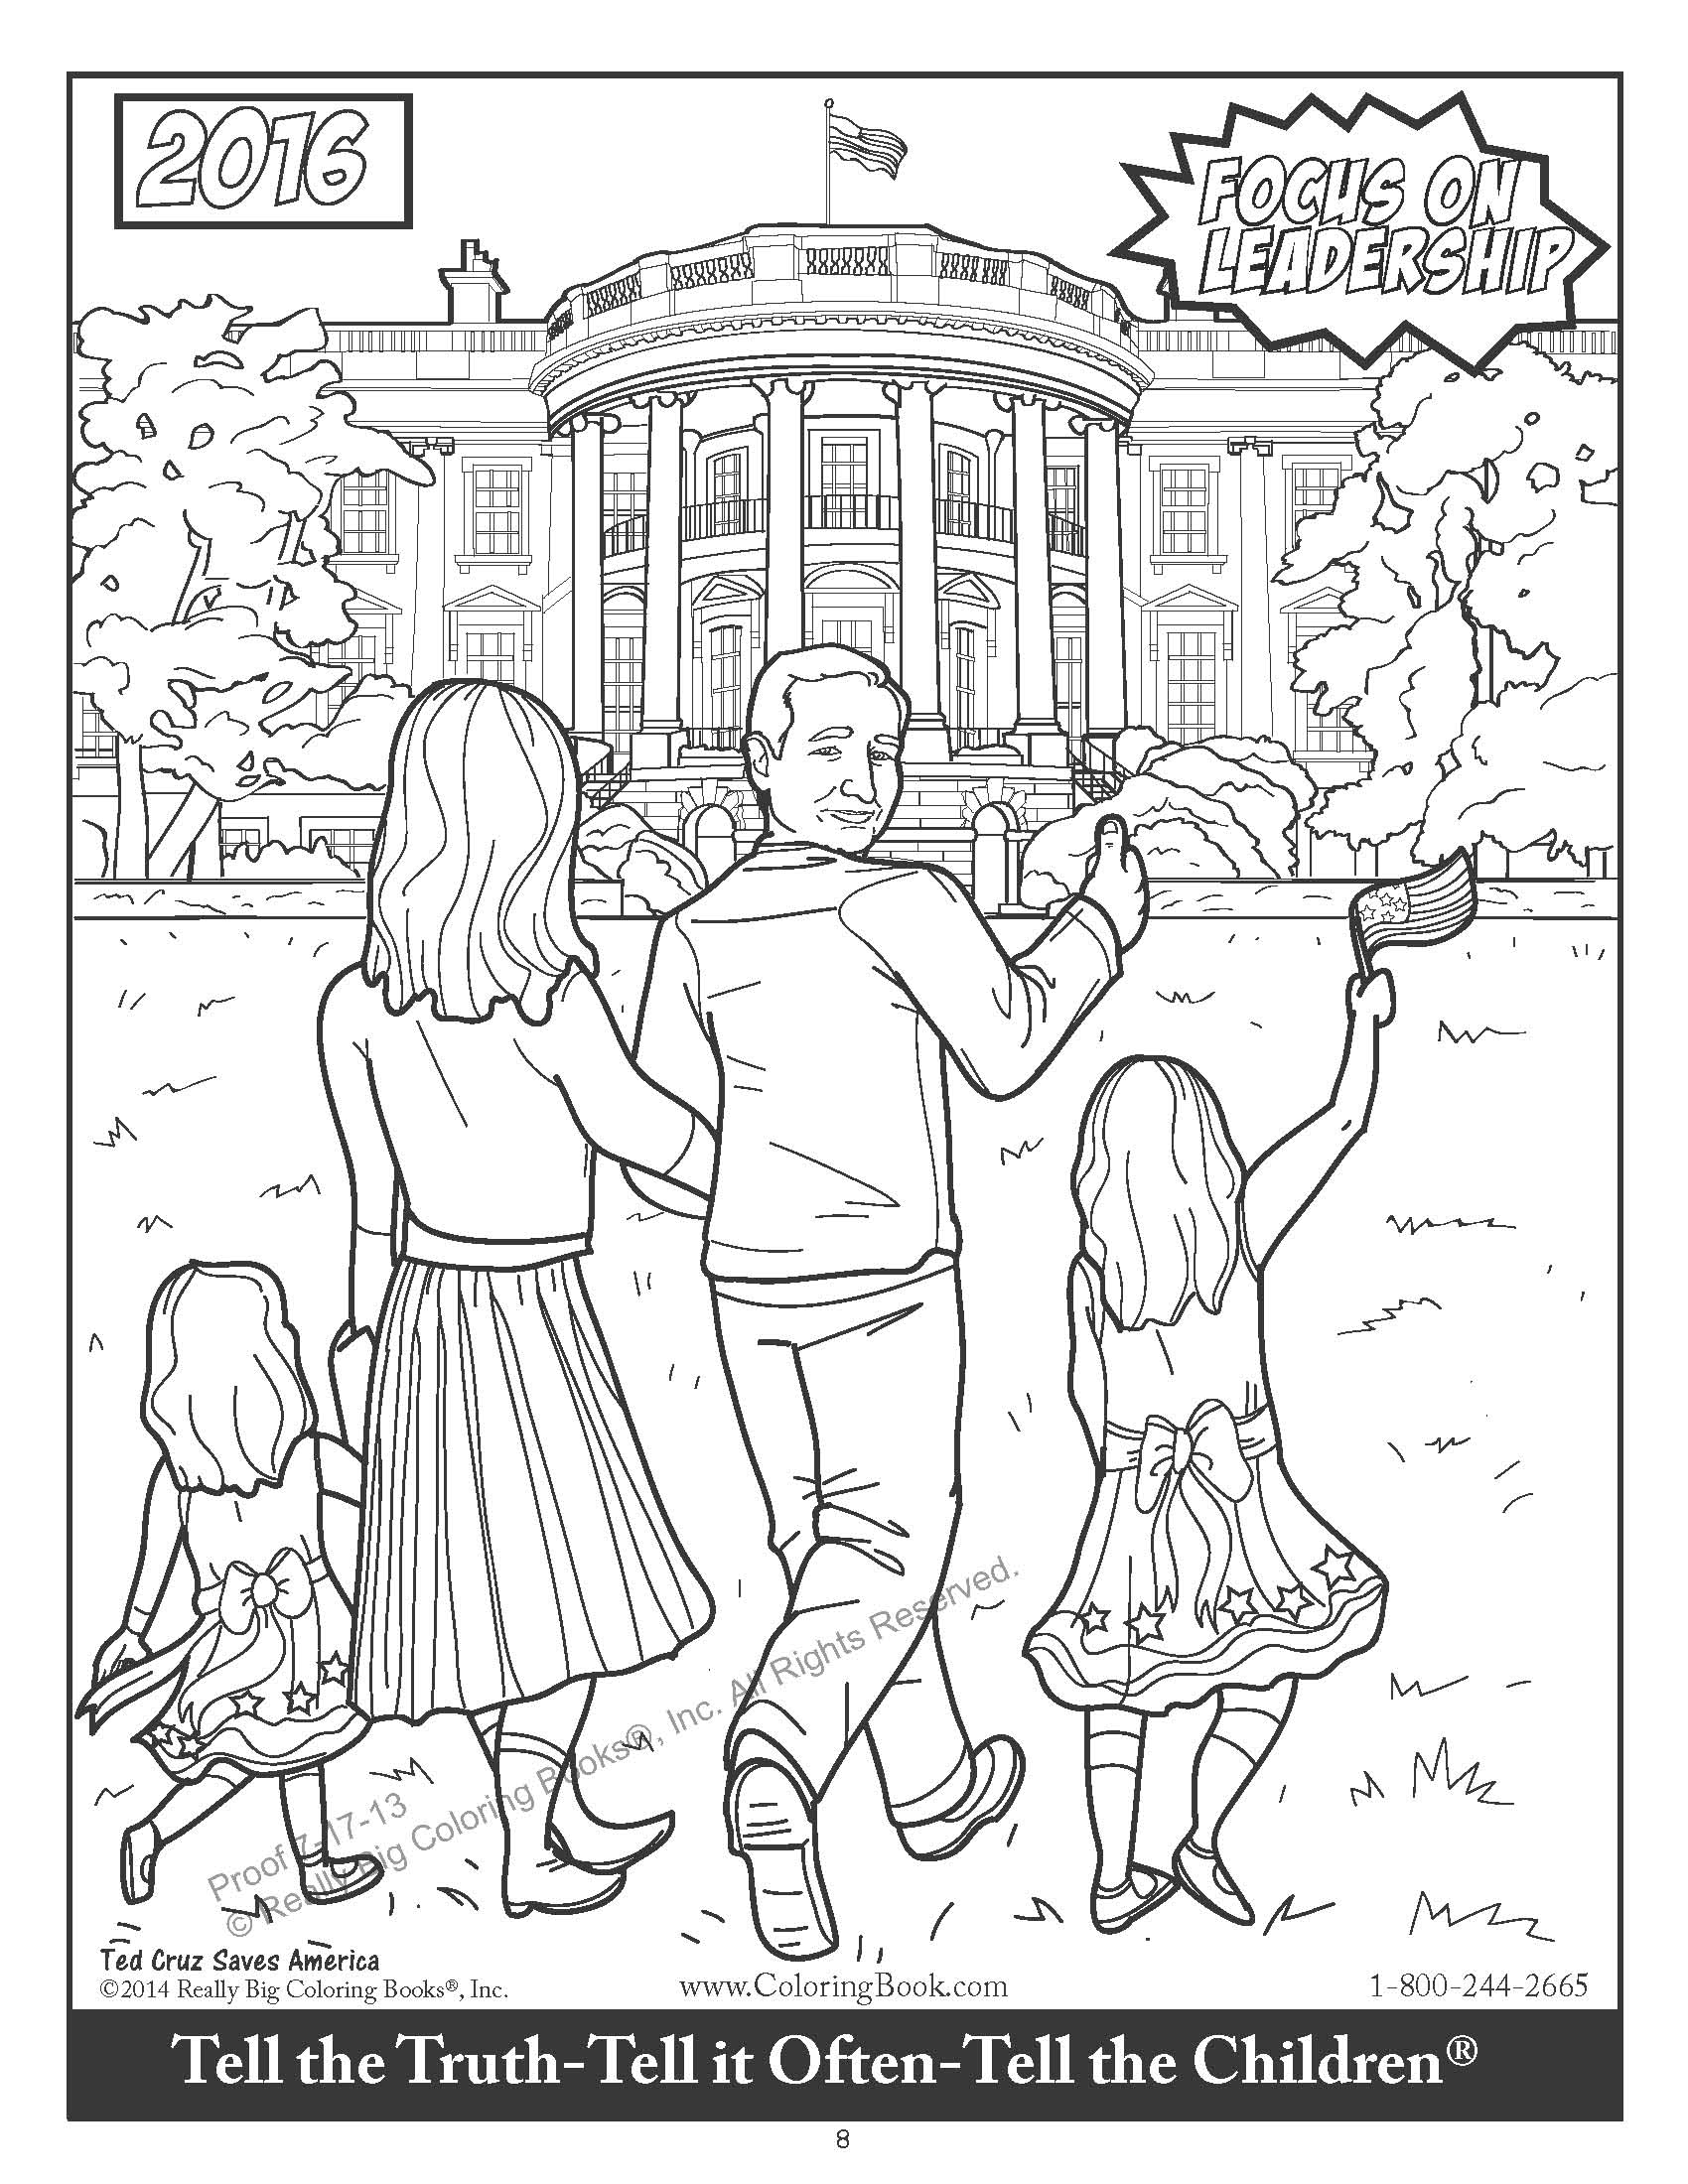 I colored the new Ted Cruz coloring book so you don't have